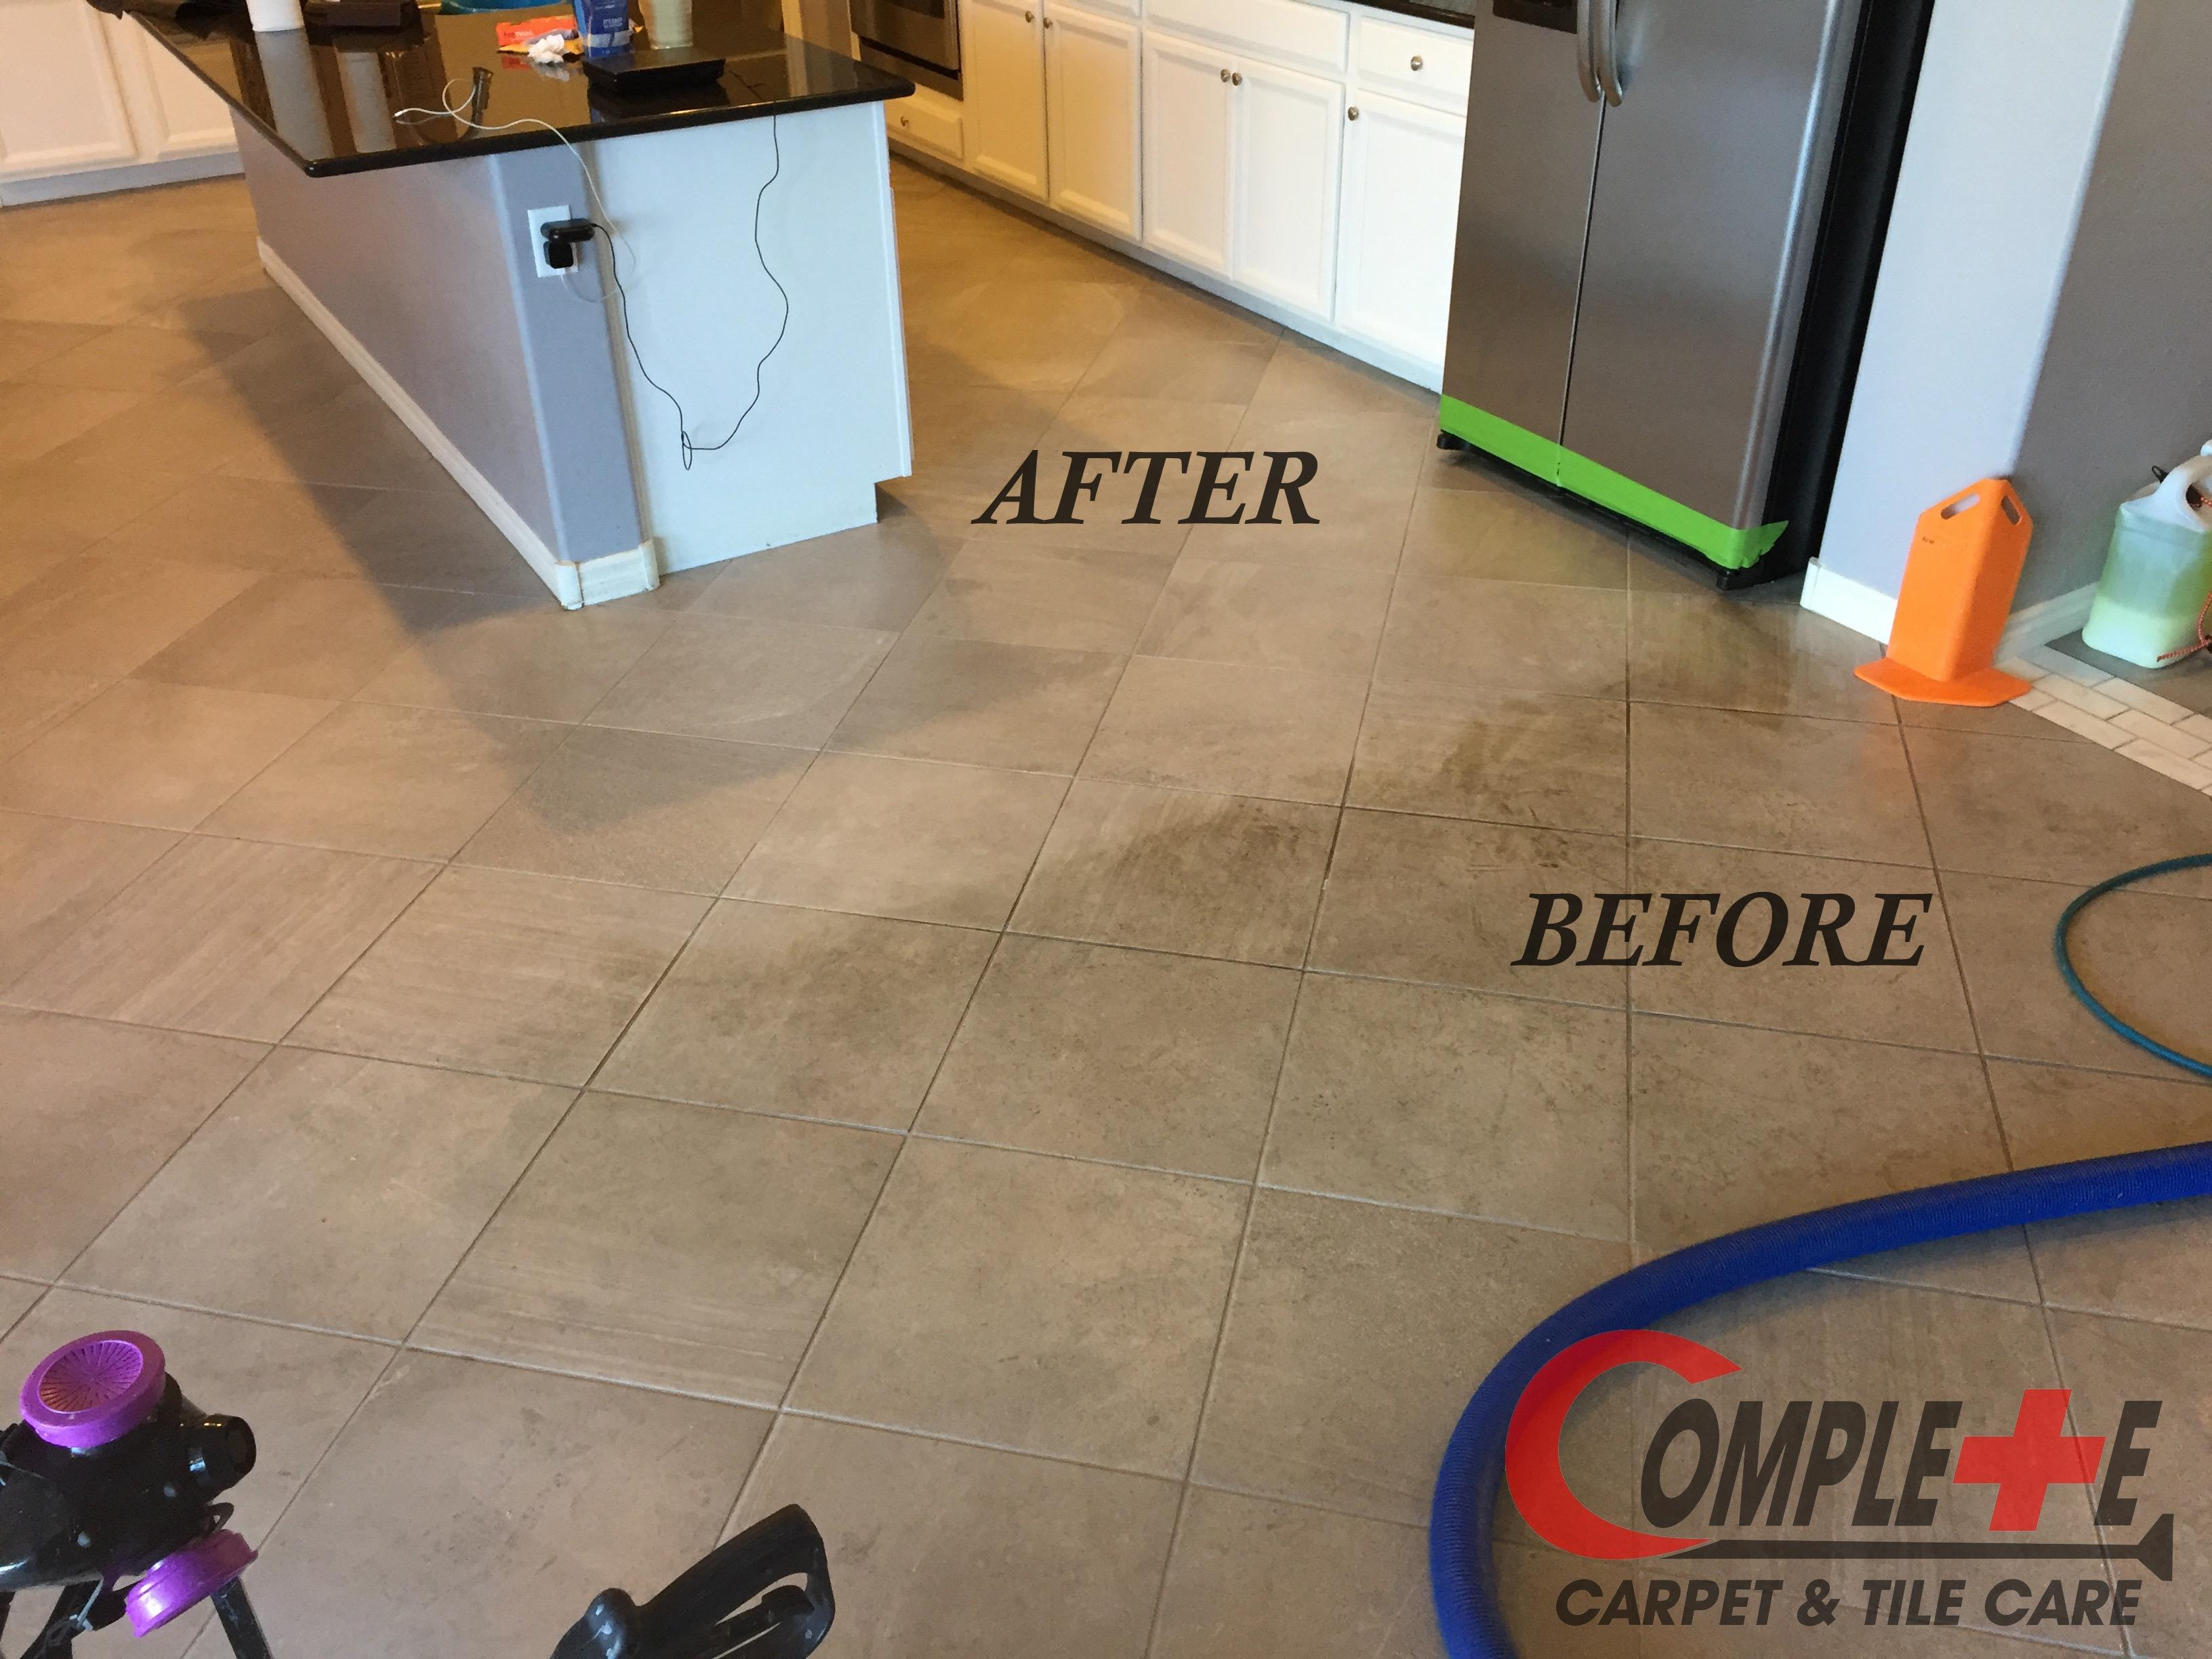 Complete Carpet And Tile Care Coupons Near Me In Las Vegas